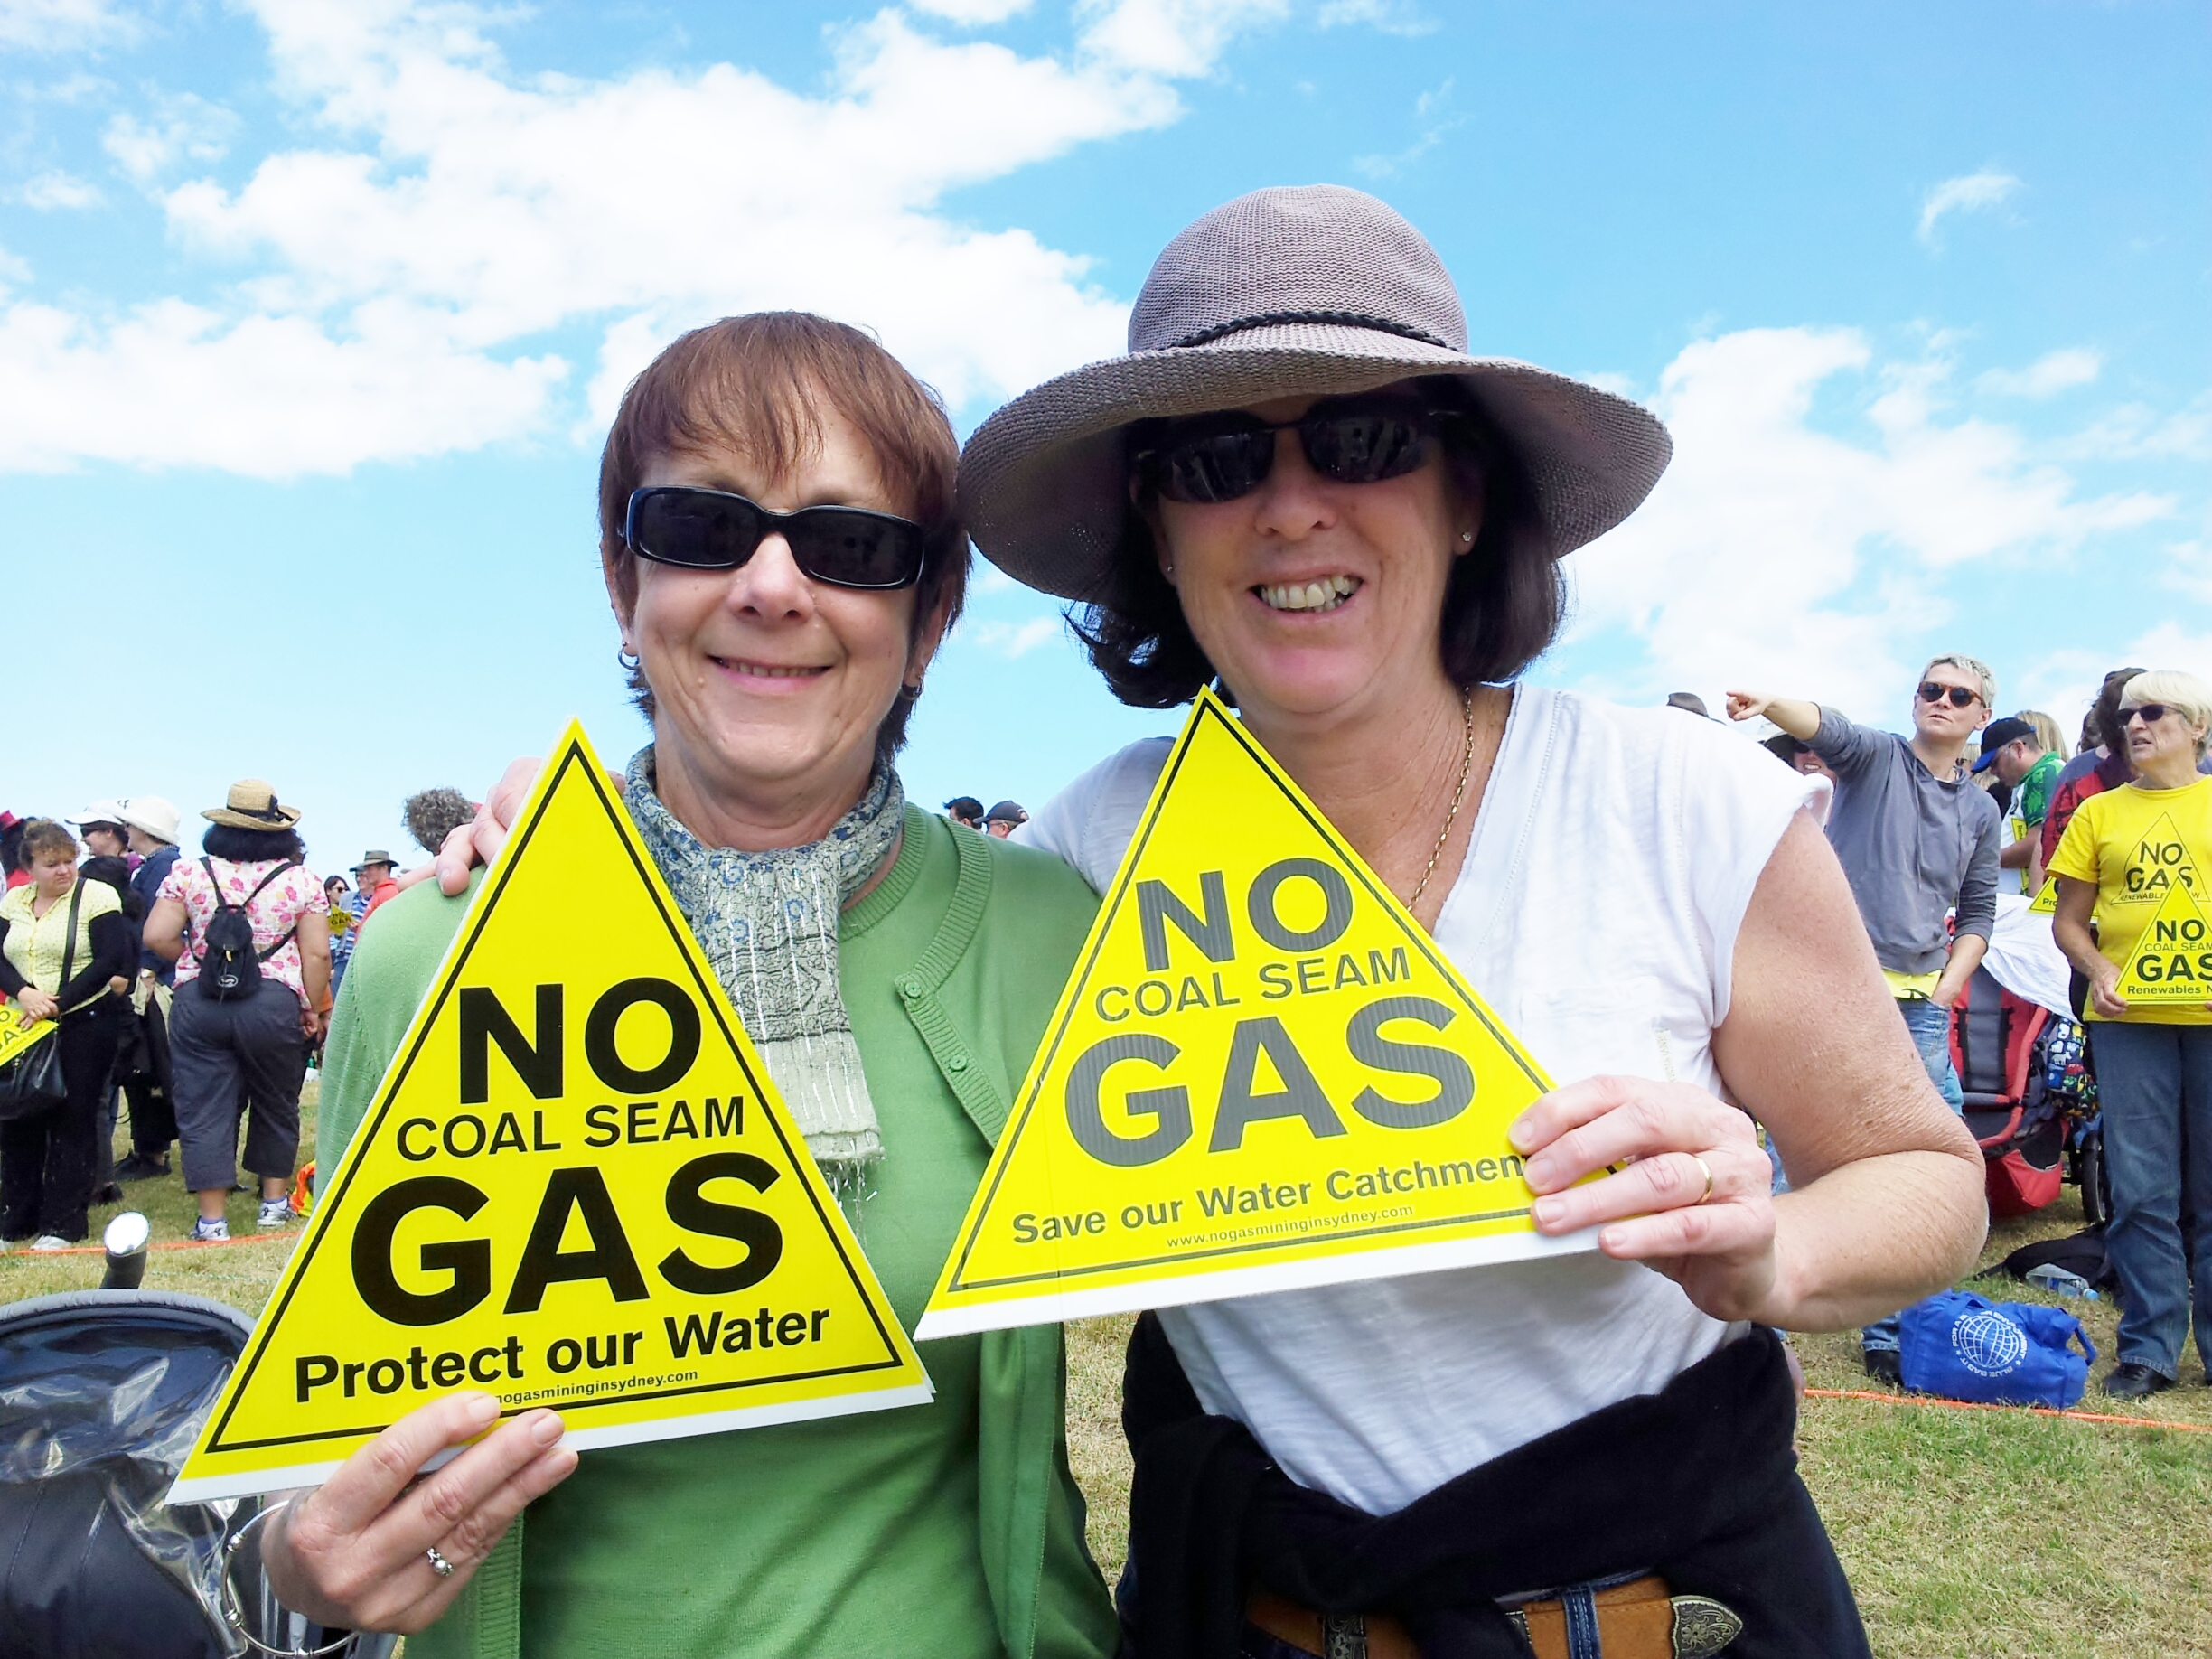 Coal Seam Gas – national week of action